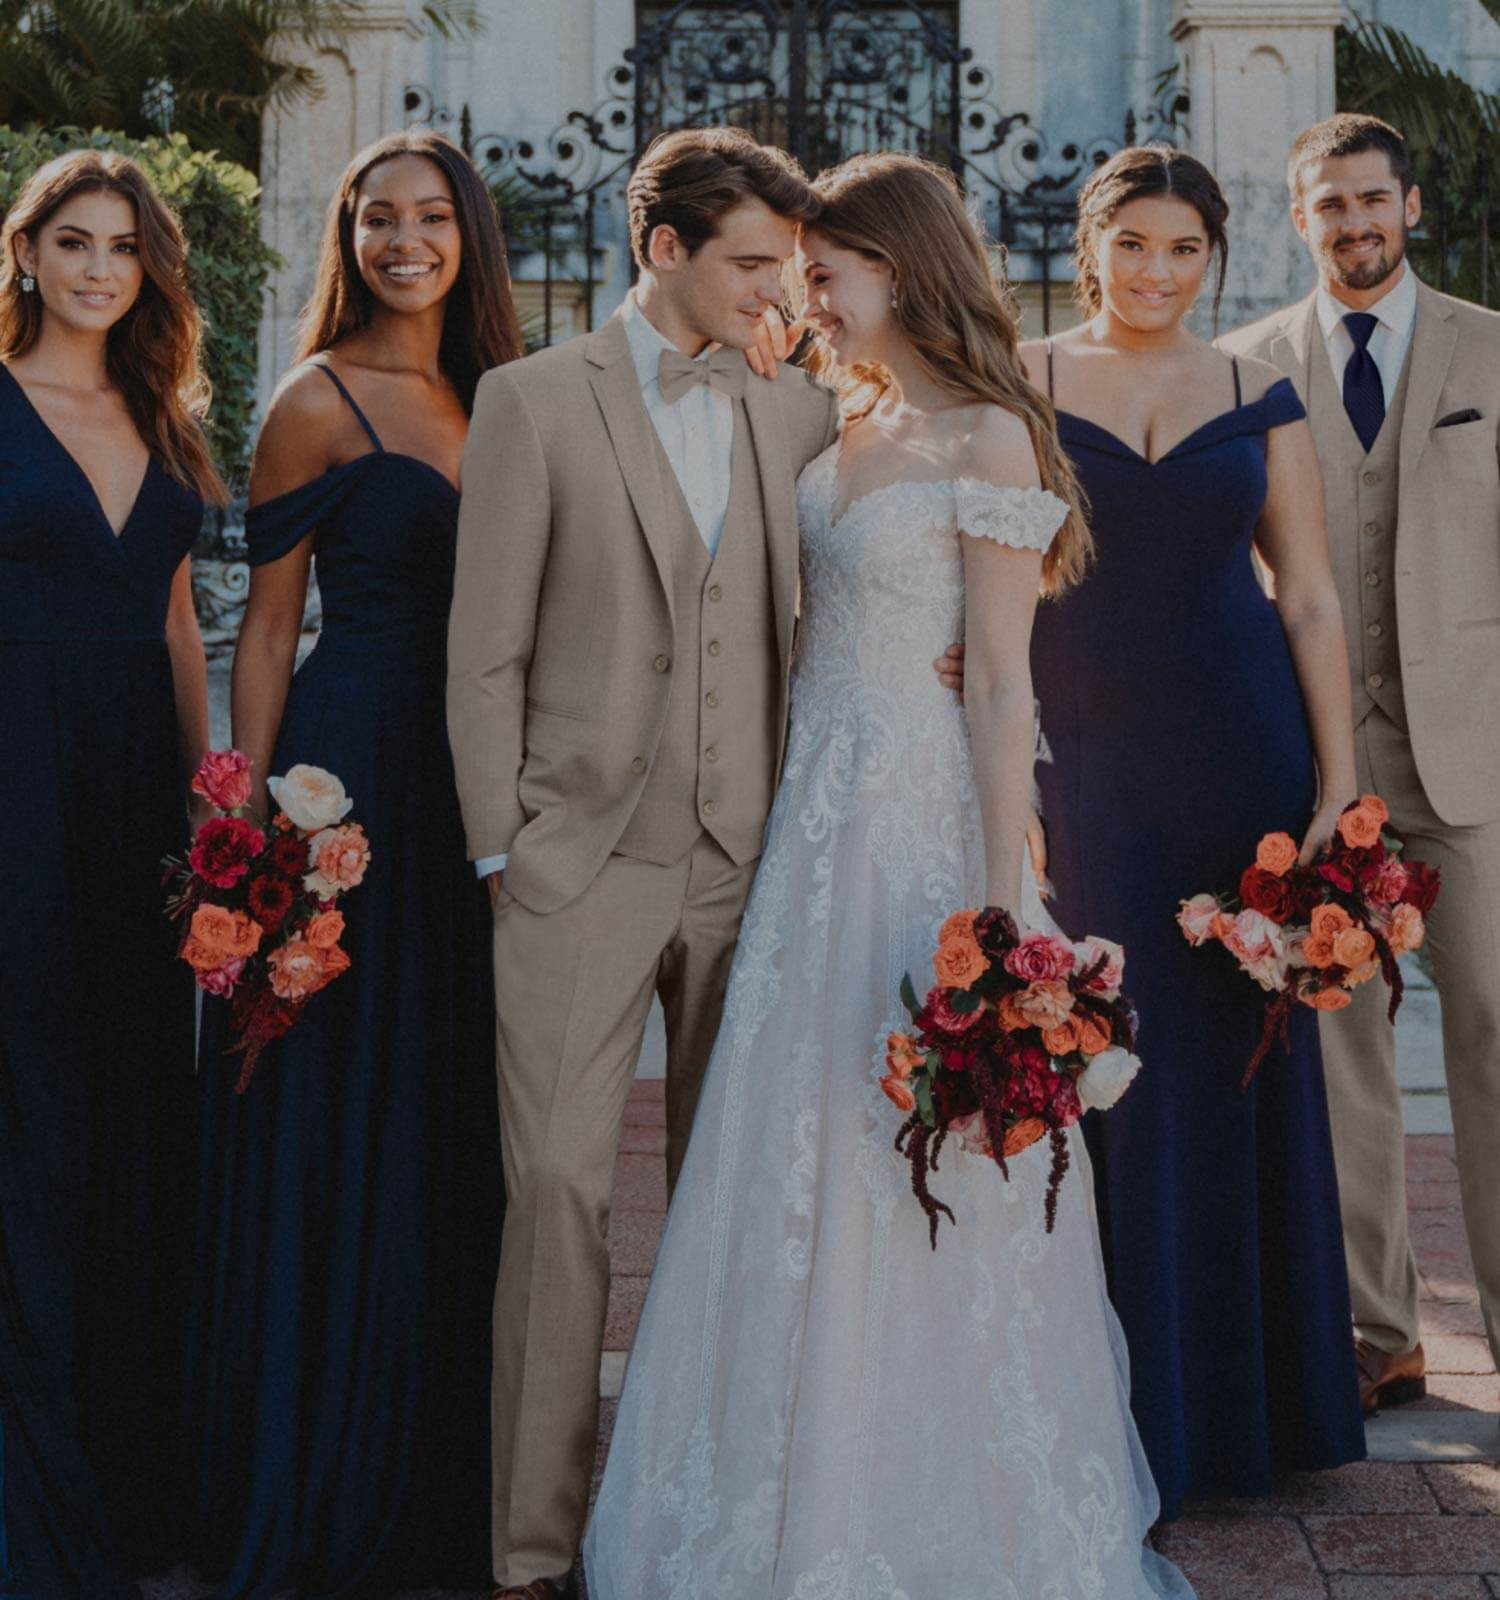 Photo of Michelle's Bridal & Tuxedo Bride, groom and bridesmaids